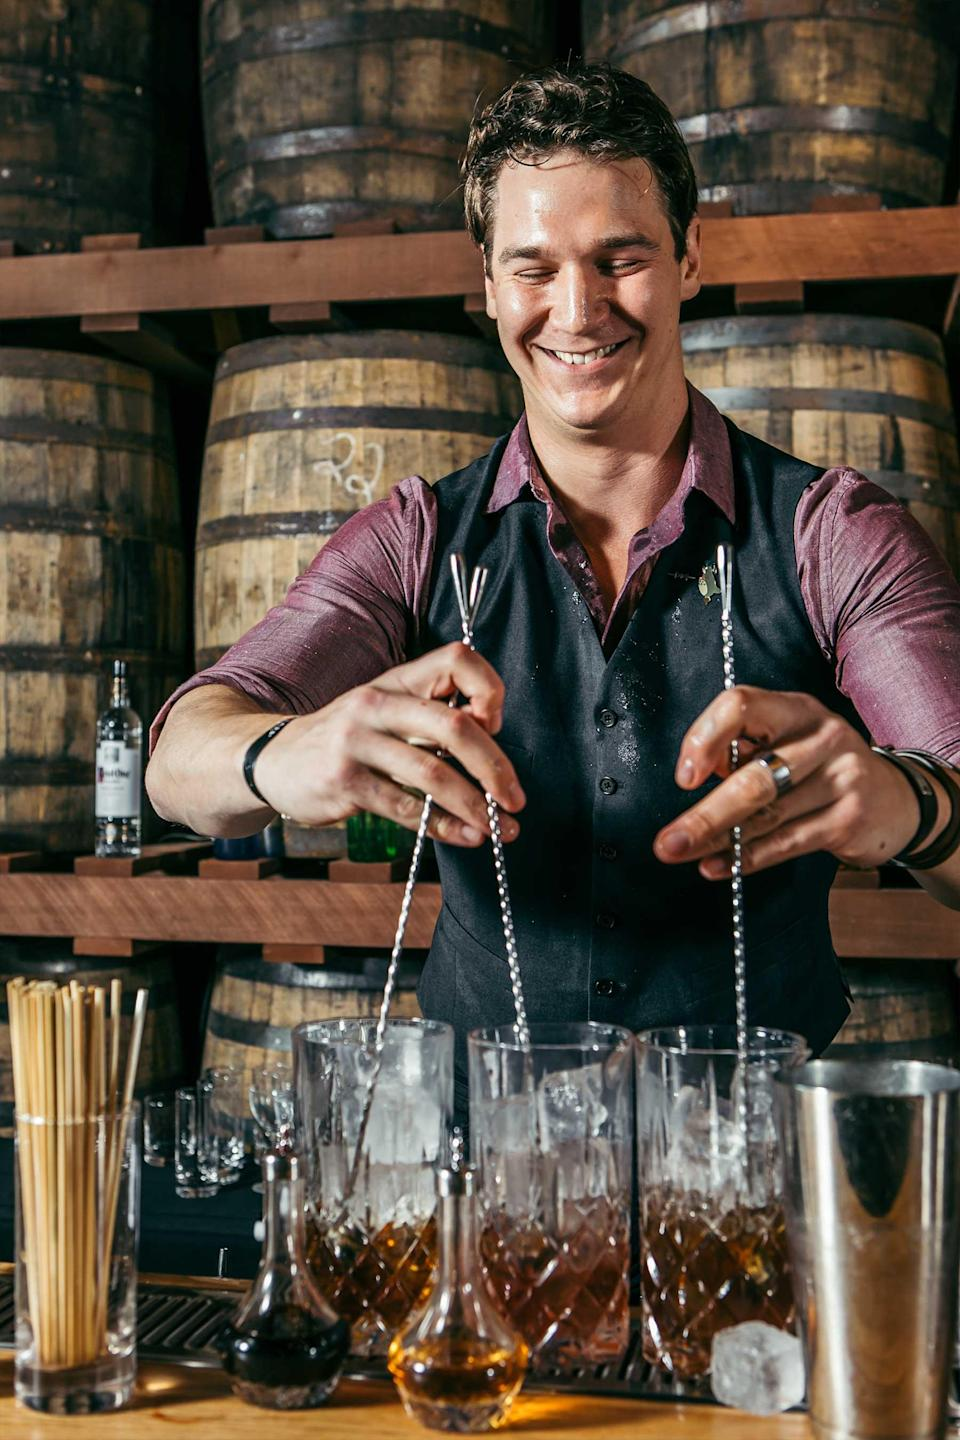 USBG and Diageo Announce Adam Fournier as the 2021 U.S. World Class Bartender of the Year